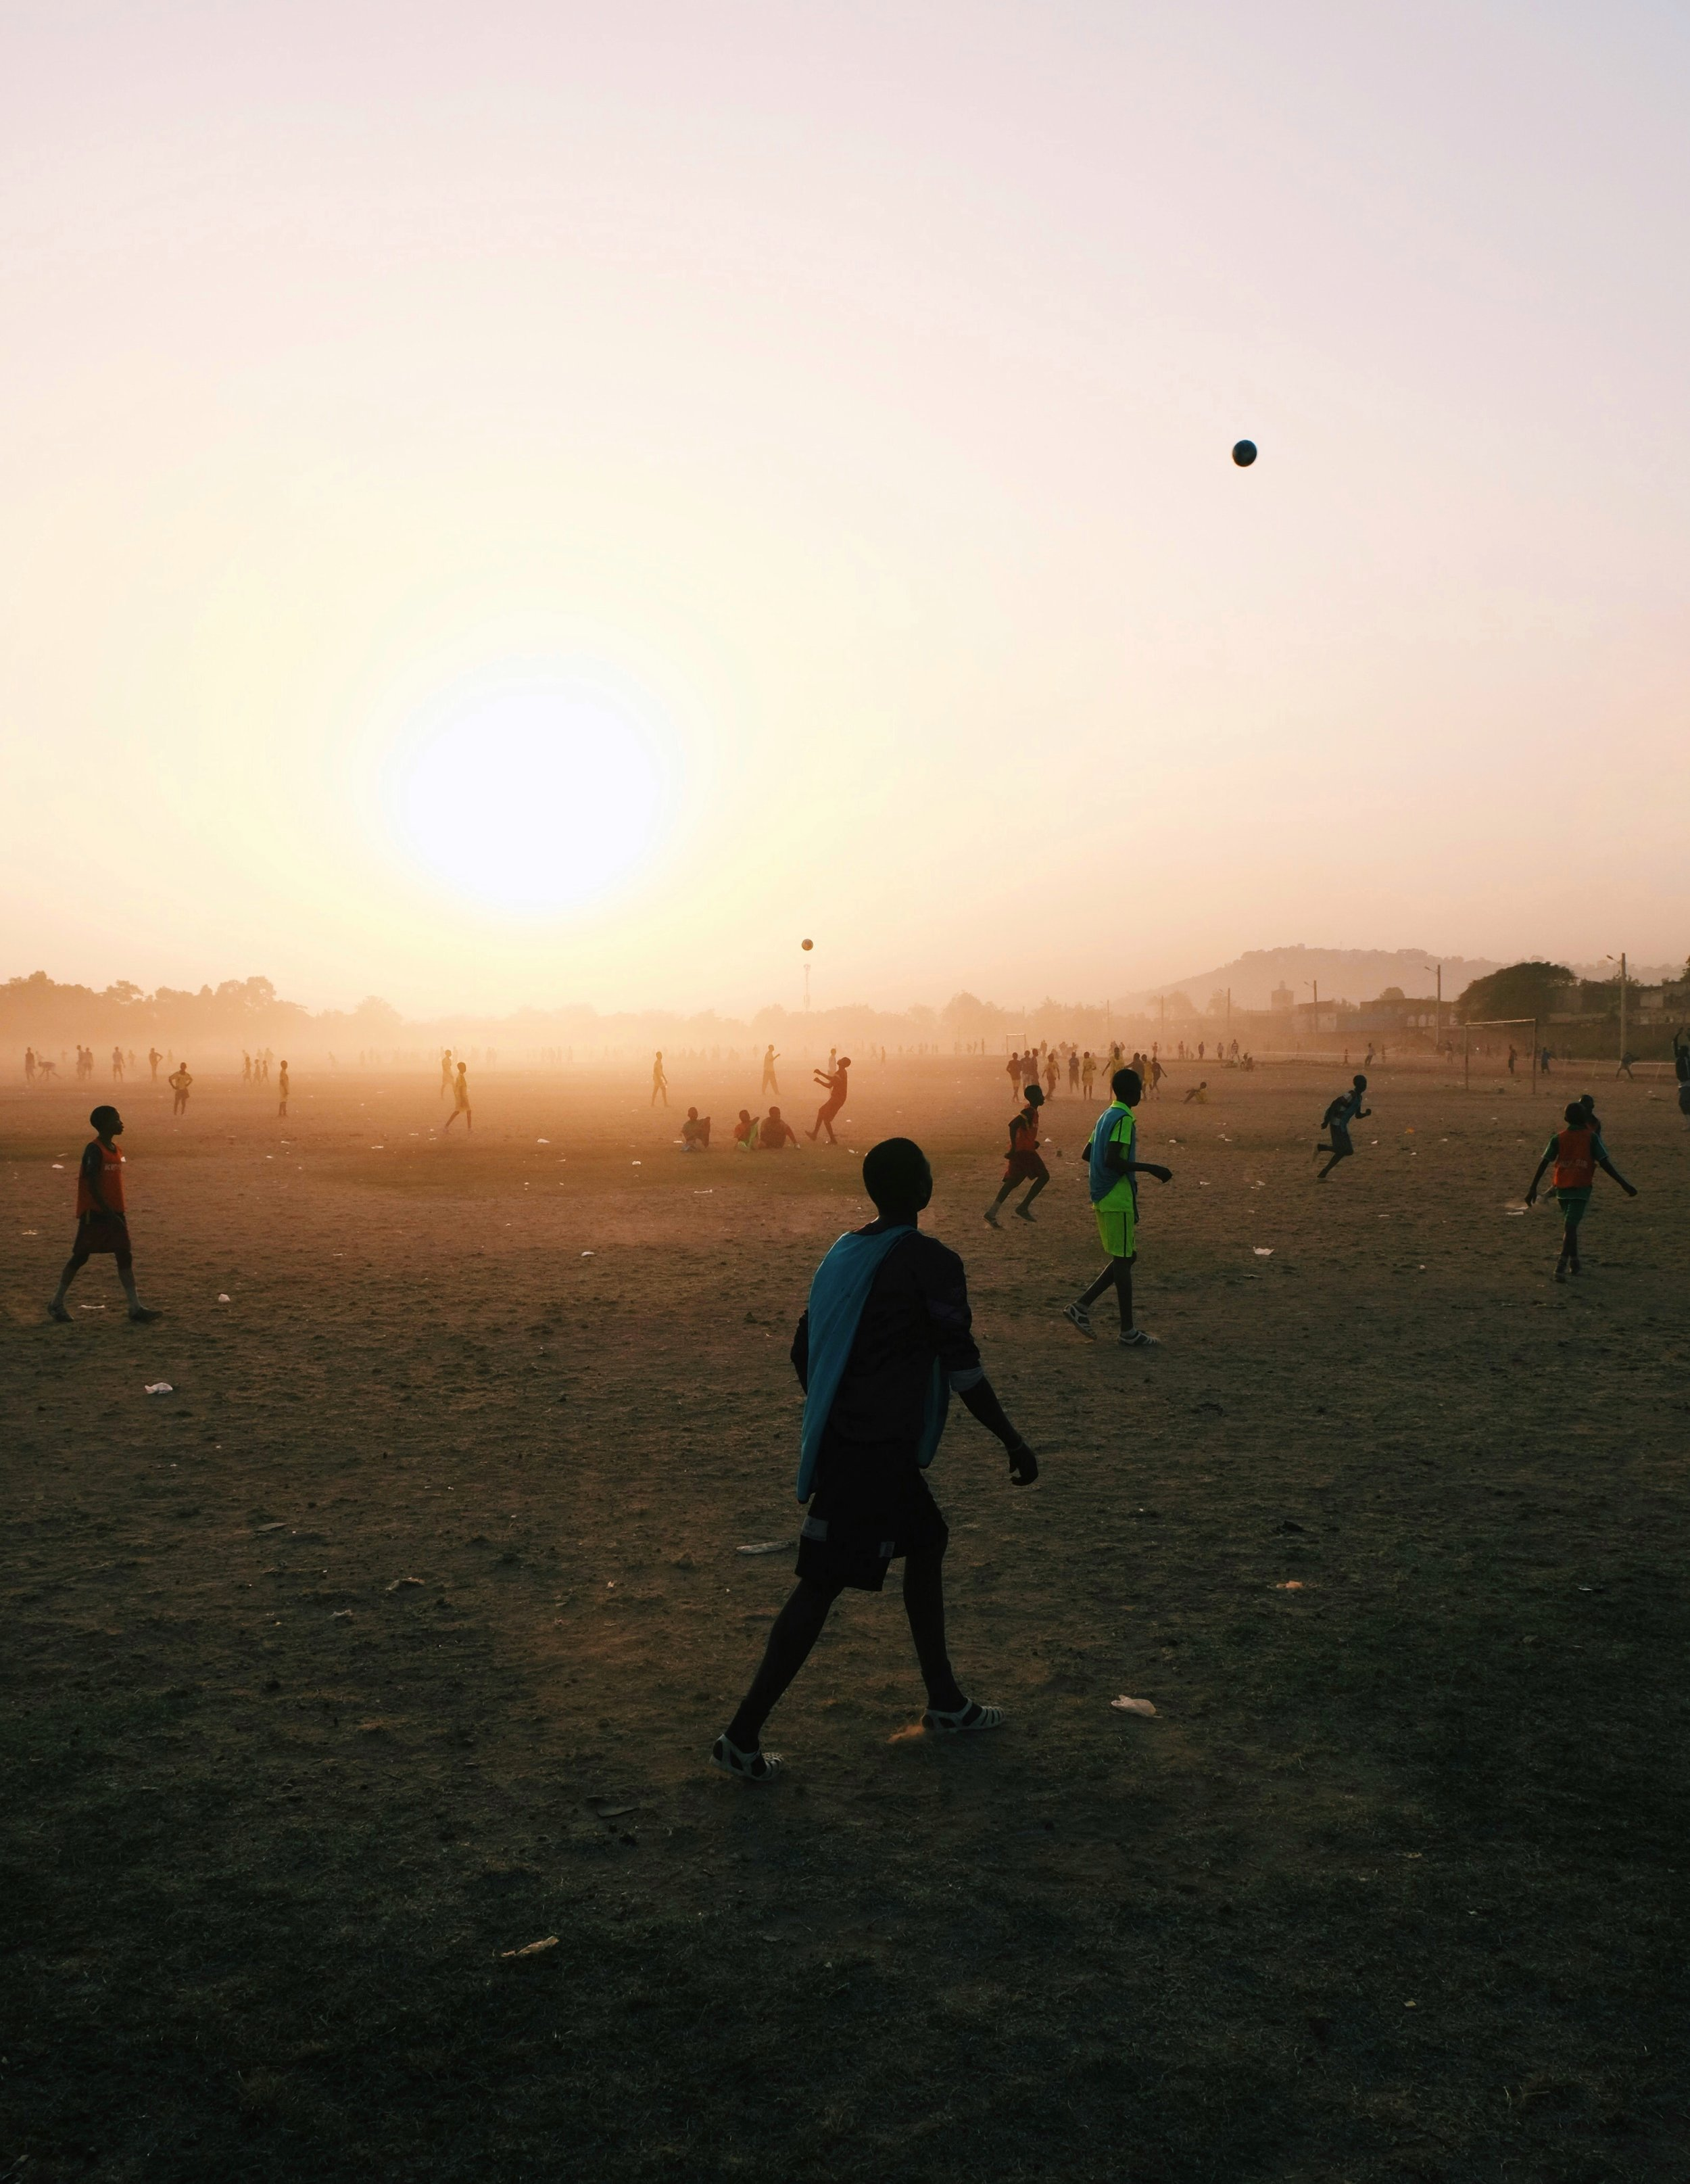 Soccer at Hippodrome Bamako by Joost Bastmeijer in Mali.jpeg